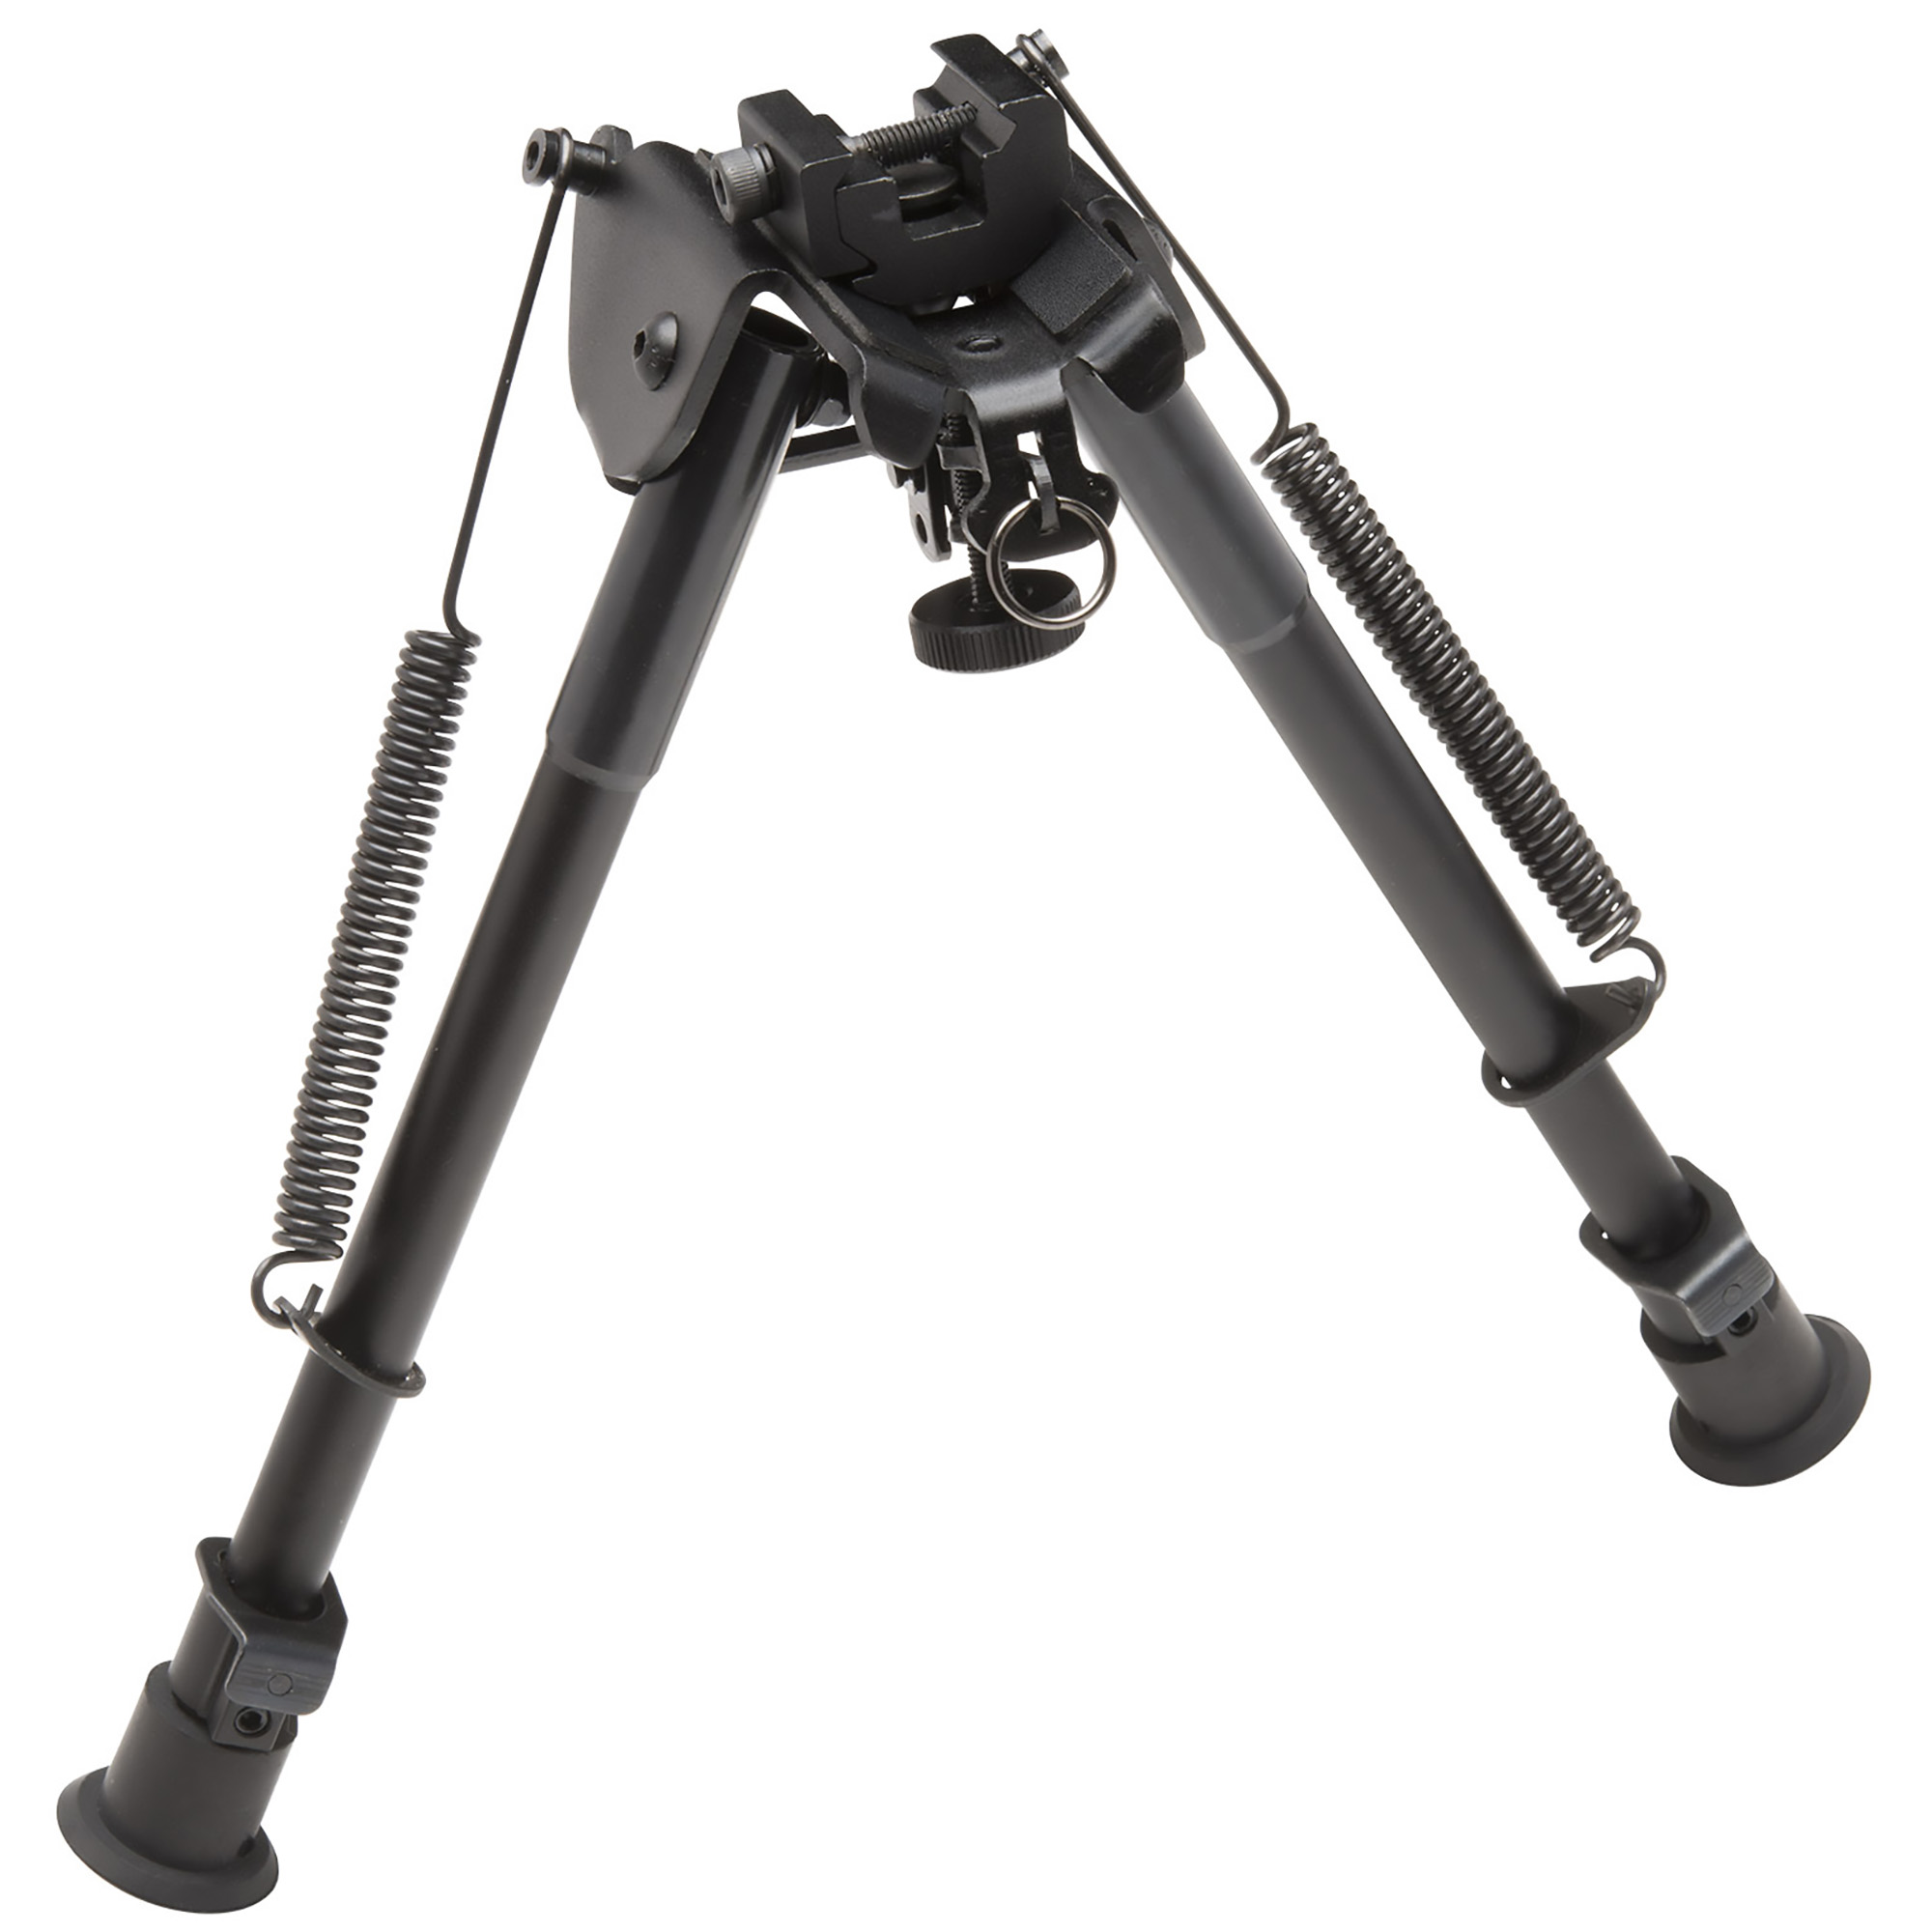 """This TAC POD adjustable bipod mounts to a sling swivel stud or a picatinny rail. It is lightweight and compact with quick deployment. It has a spring-assisted design and it even includes a sling stud adapter that can be used without bipod for additional sling mounting options. Adjusts 9""""-13""""."""